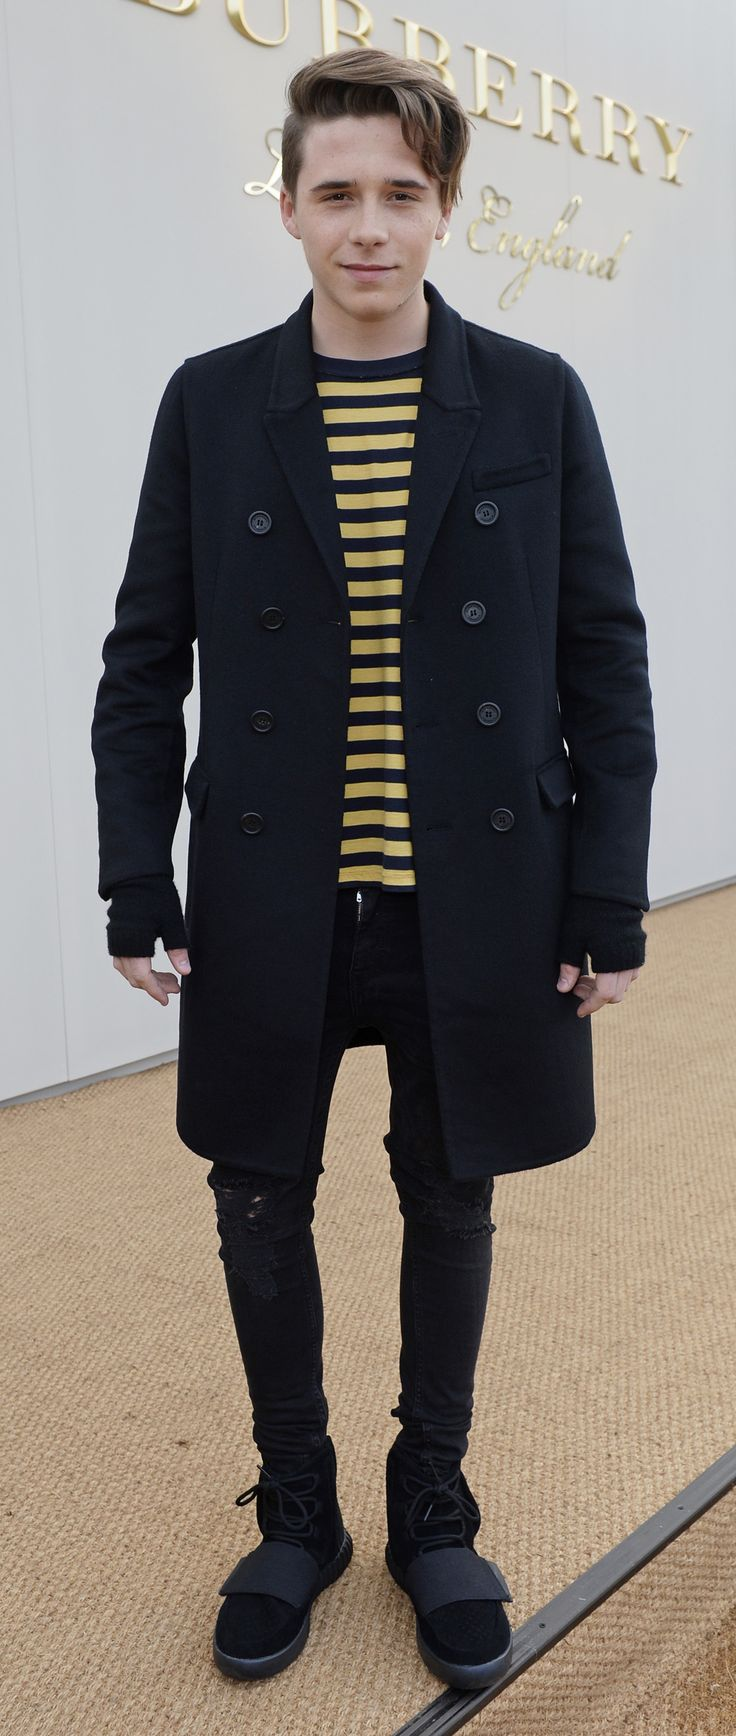 Brooklyn Beckham wearing a Burberry T-shirt and outerwear to arrive at the Menswear January 2016 show